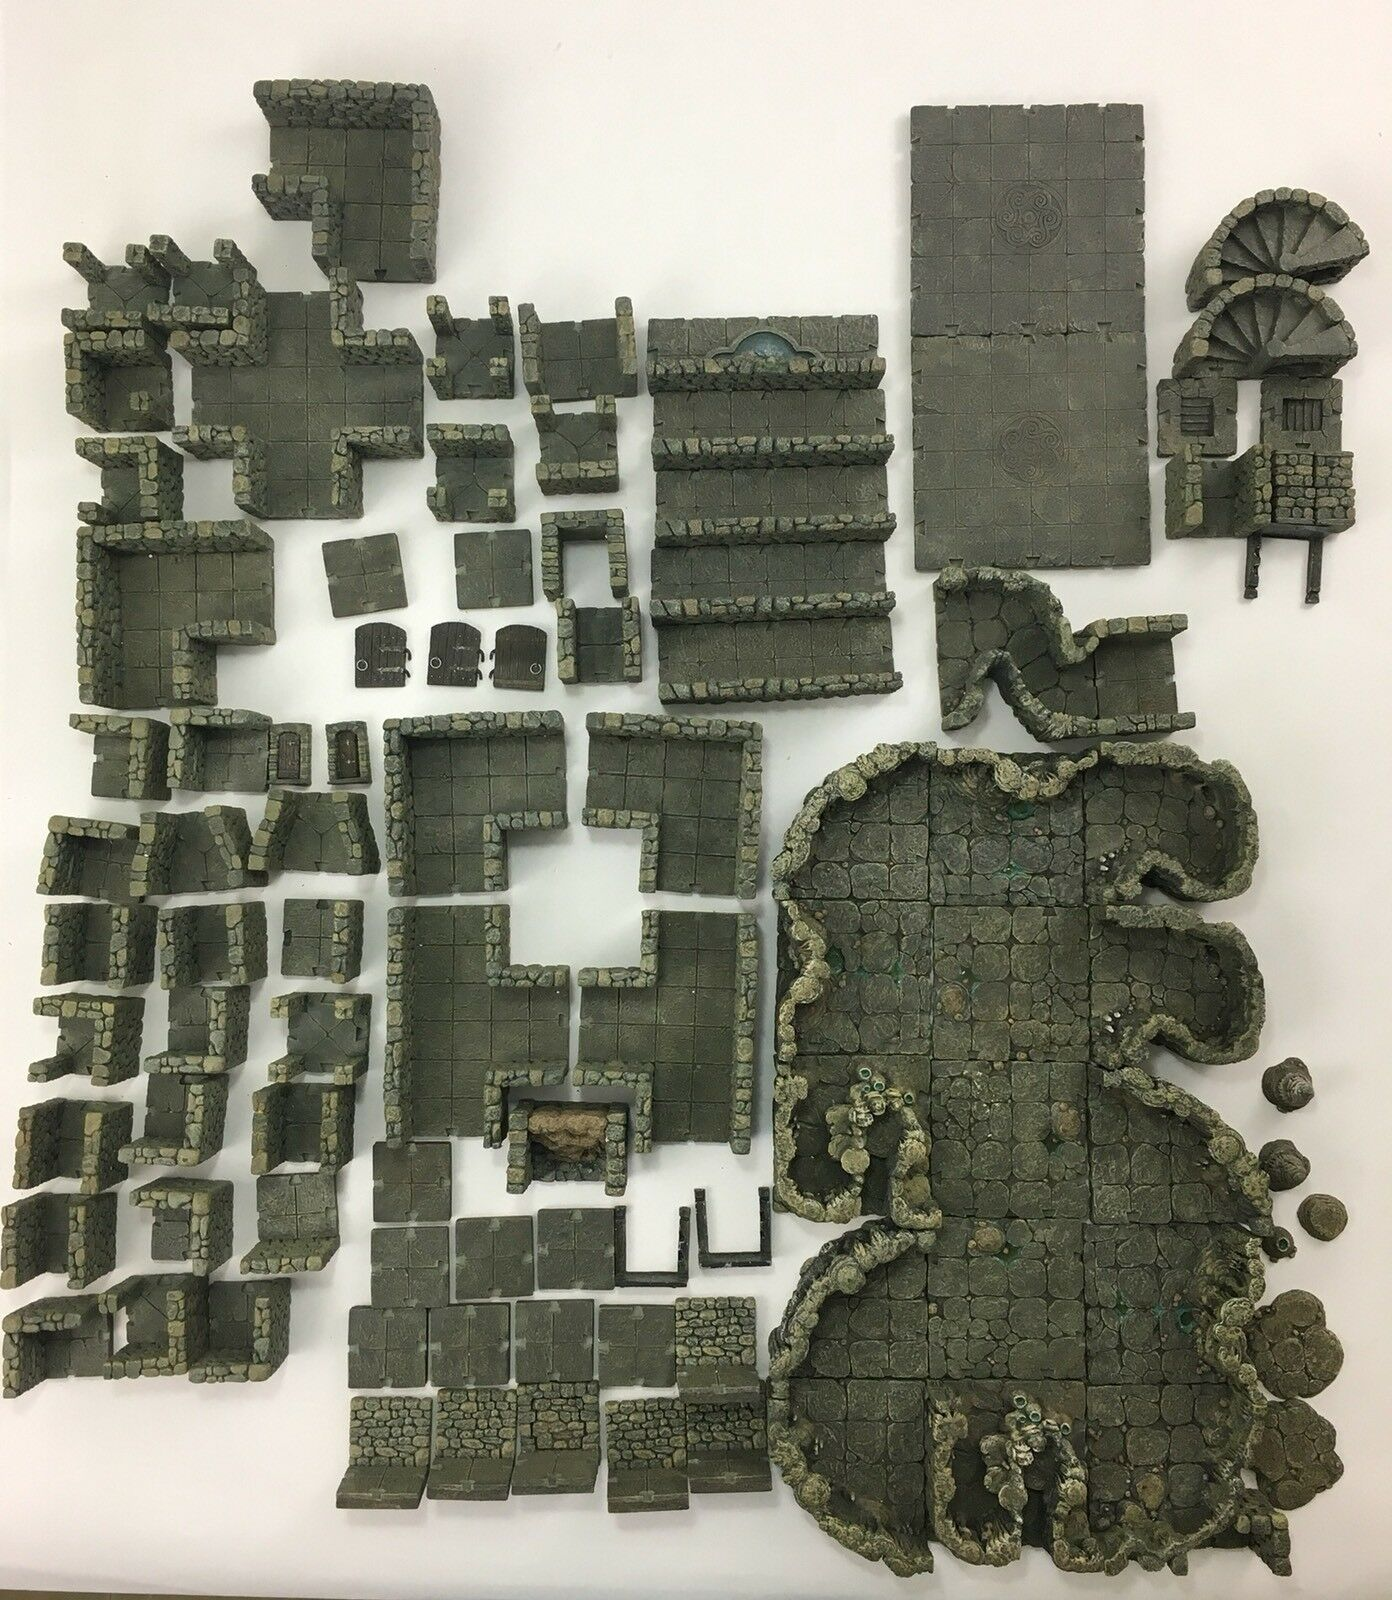 Lot 4 Dwarven Forge Master Maze Cavern Wicked II Narrow Passages Resin Terrain